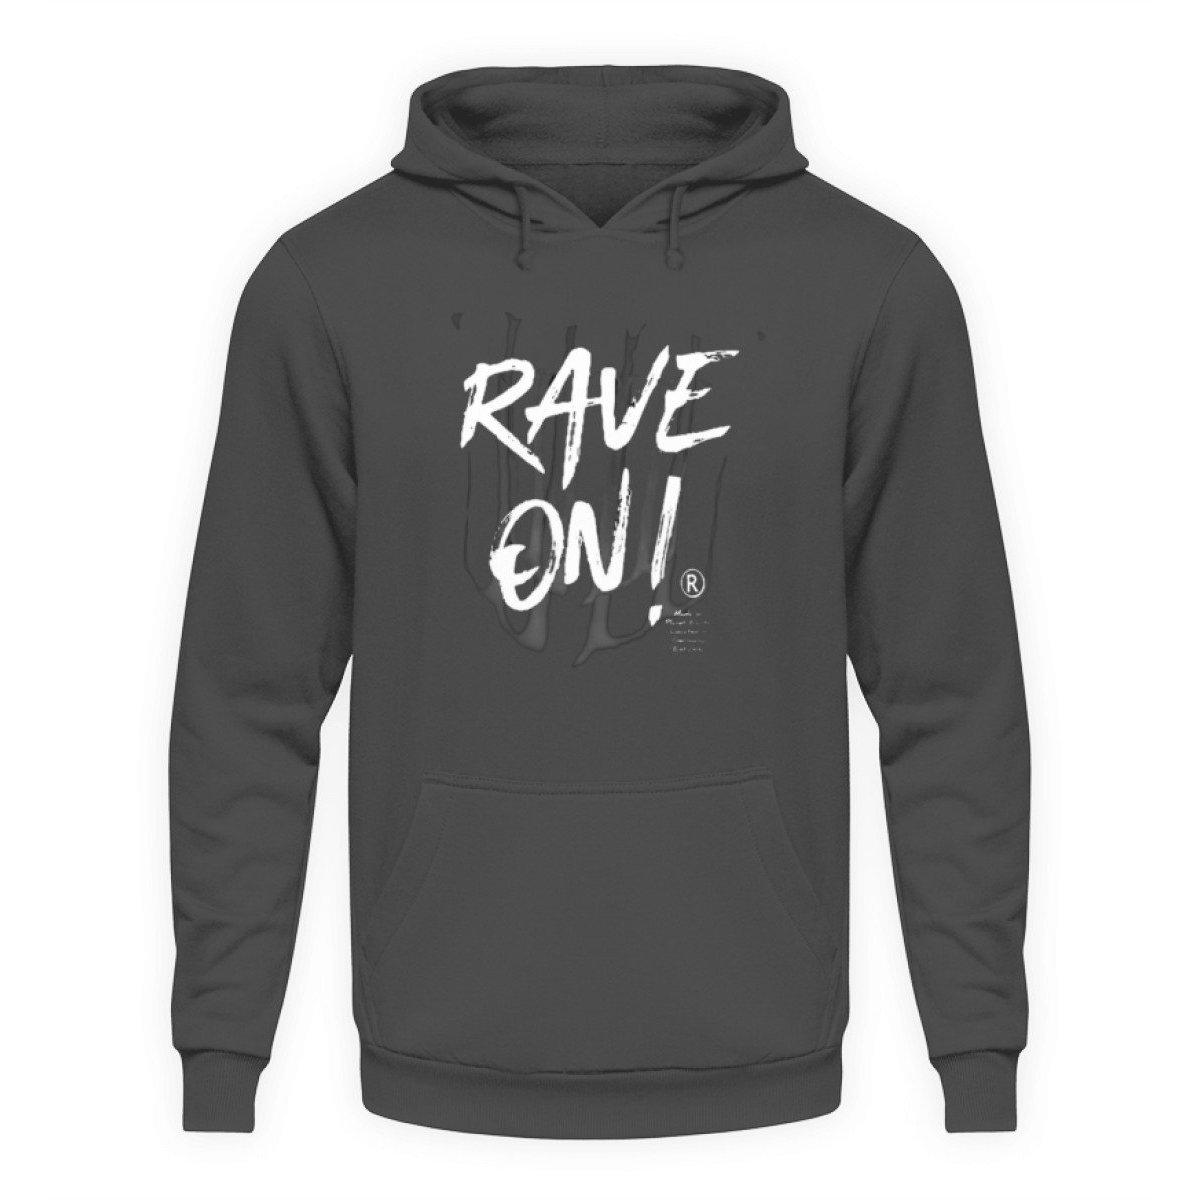 Rave On!® - Made On Planet Earth B2k20 - Unisex Kapuzenpullover Hoodie-Unisex Hoodie-Steel Grey (Solid)-L-Rave-On! I www.rave-on.shop I Deine Rave & Techno Szene Shop I brand, Design - Rave On!® - Made On Planet Earth B2k20, marke, on, rave, raver, techno - Sexy Festival Streetwear , Clubwear & Raver Style